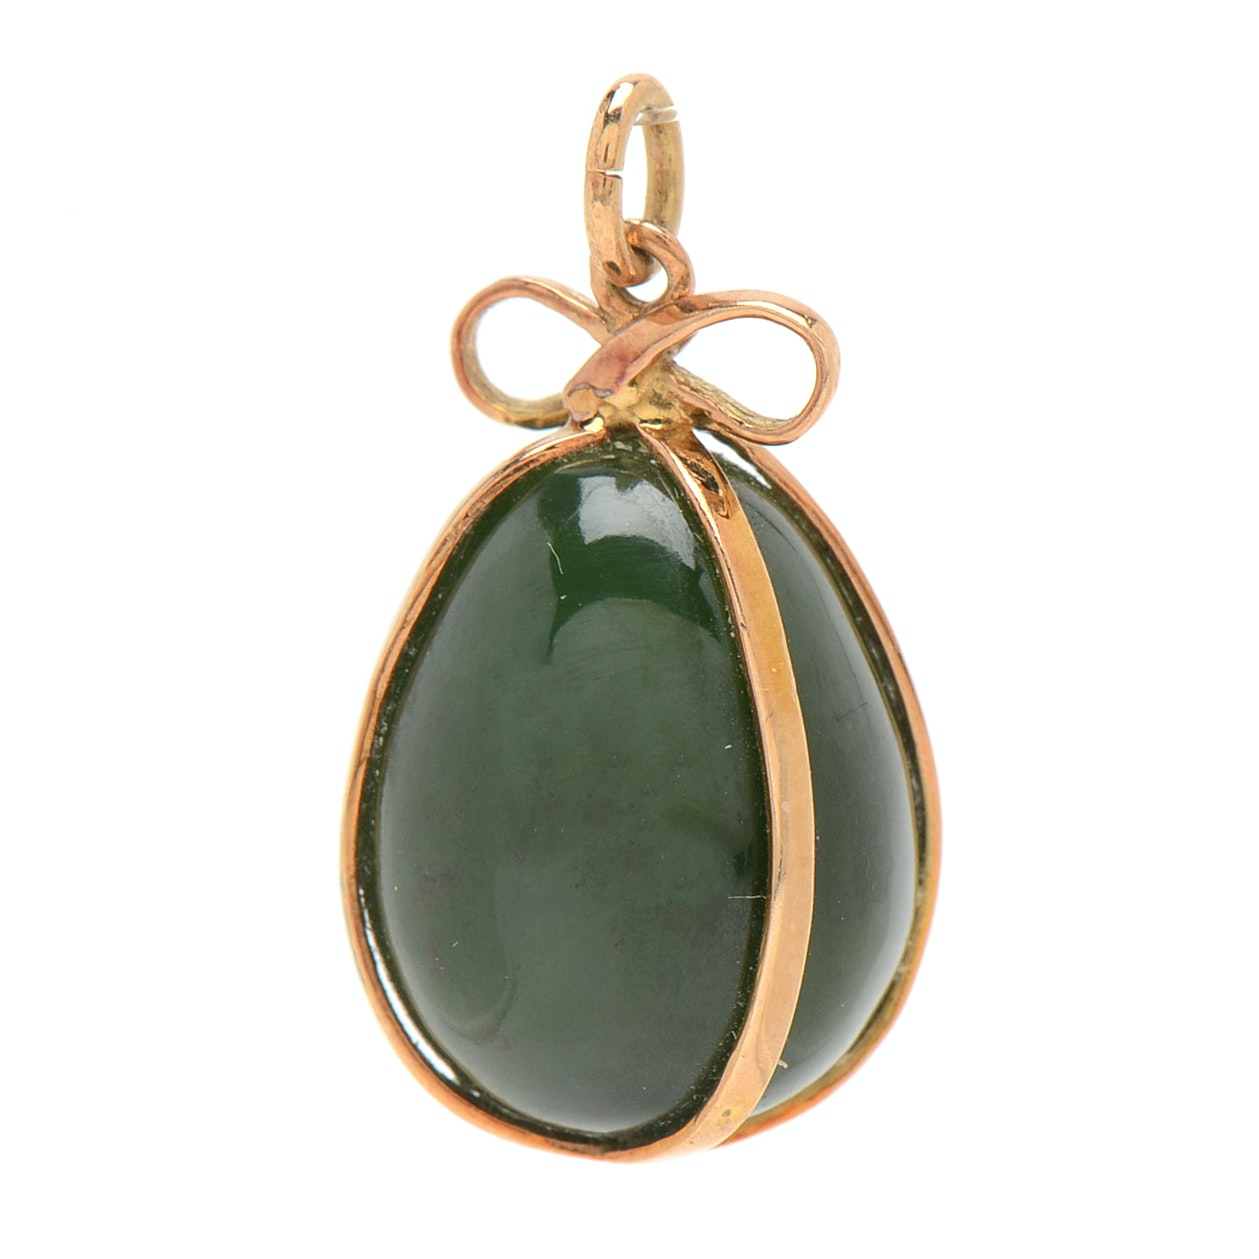 14K Rose Gold and Nephrite Charm